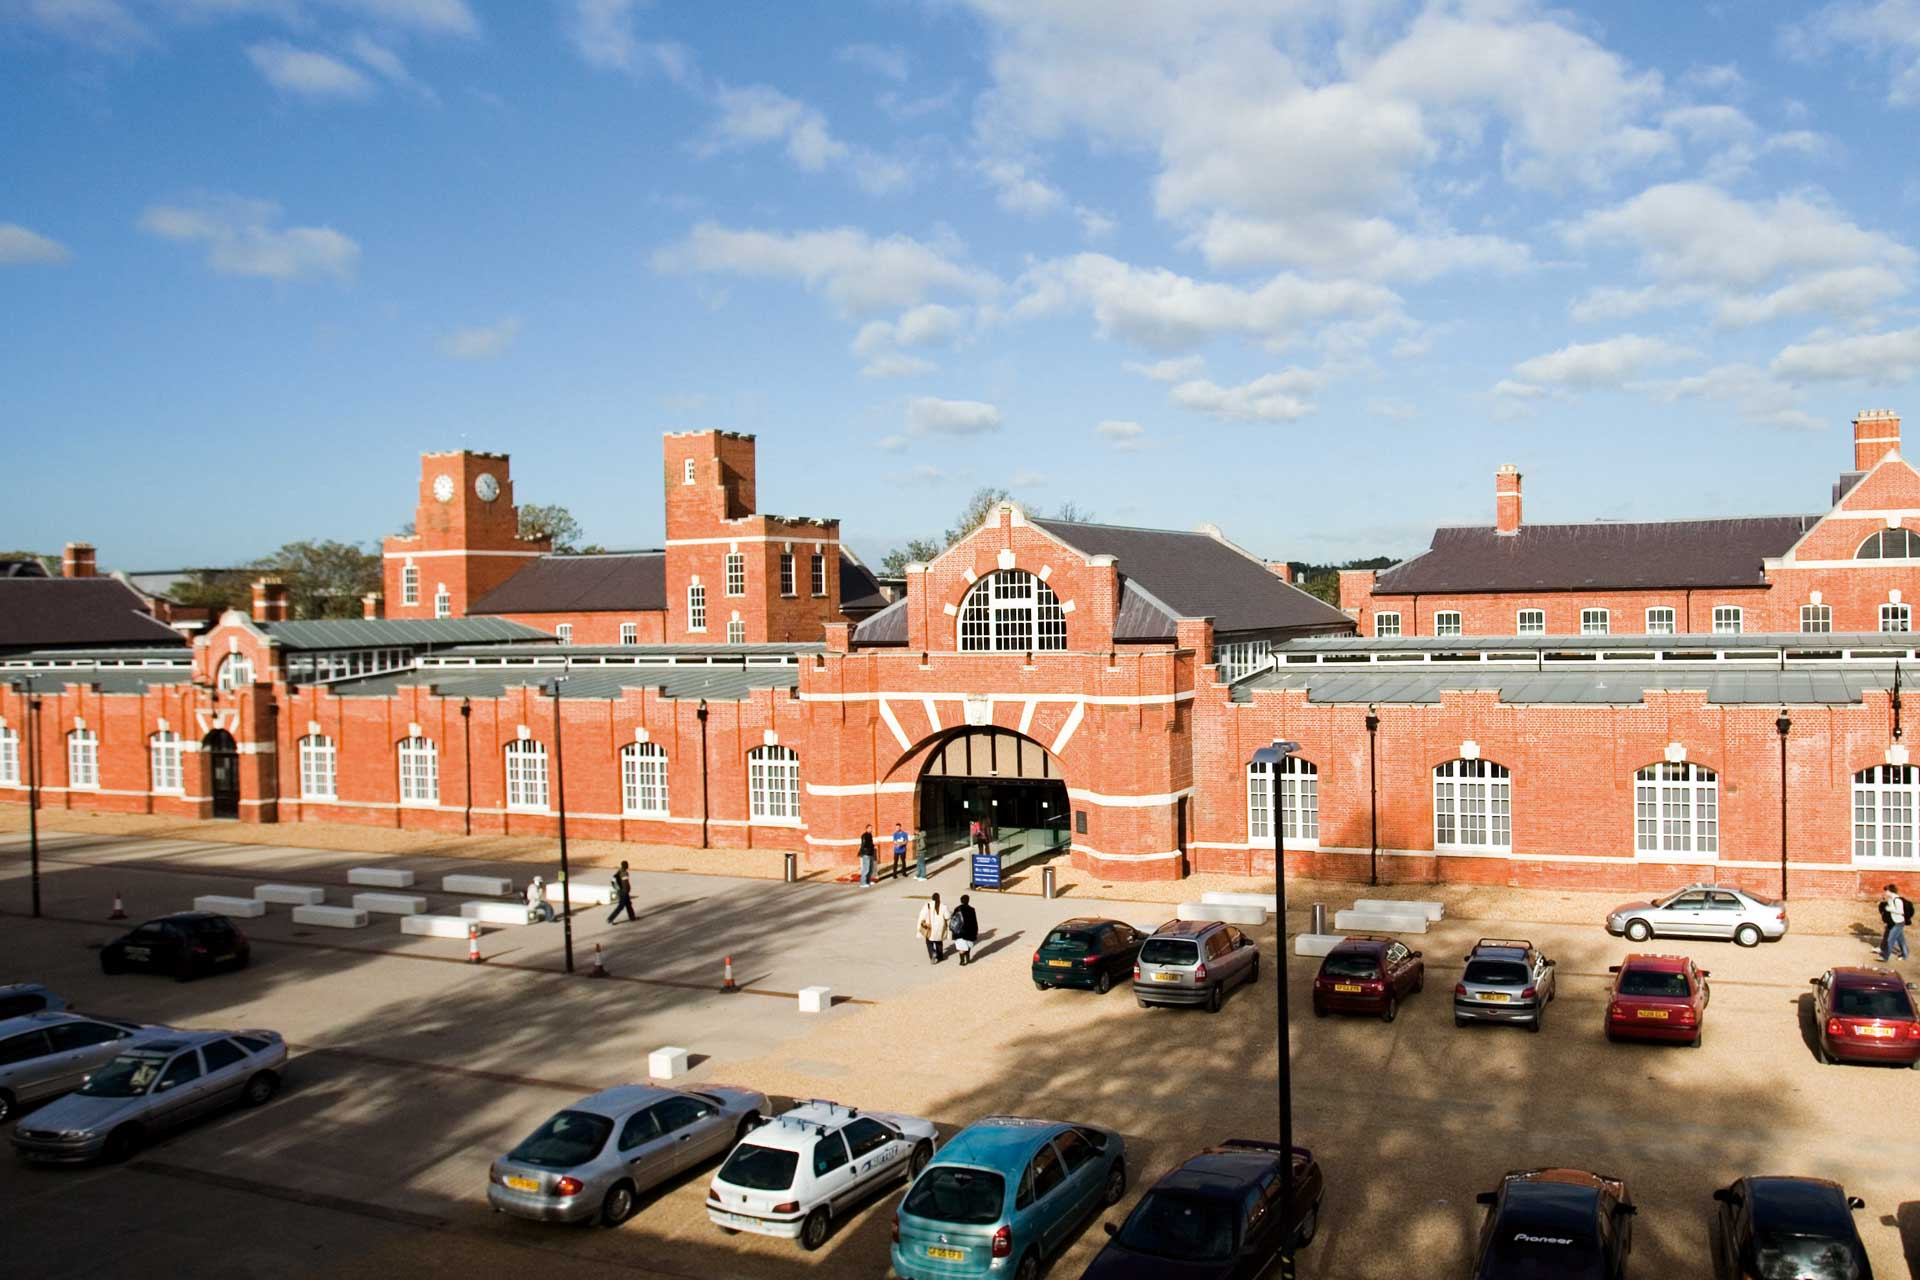 The Drill Hall Library at Medway